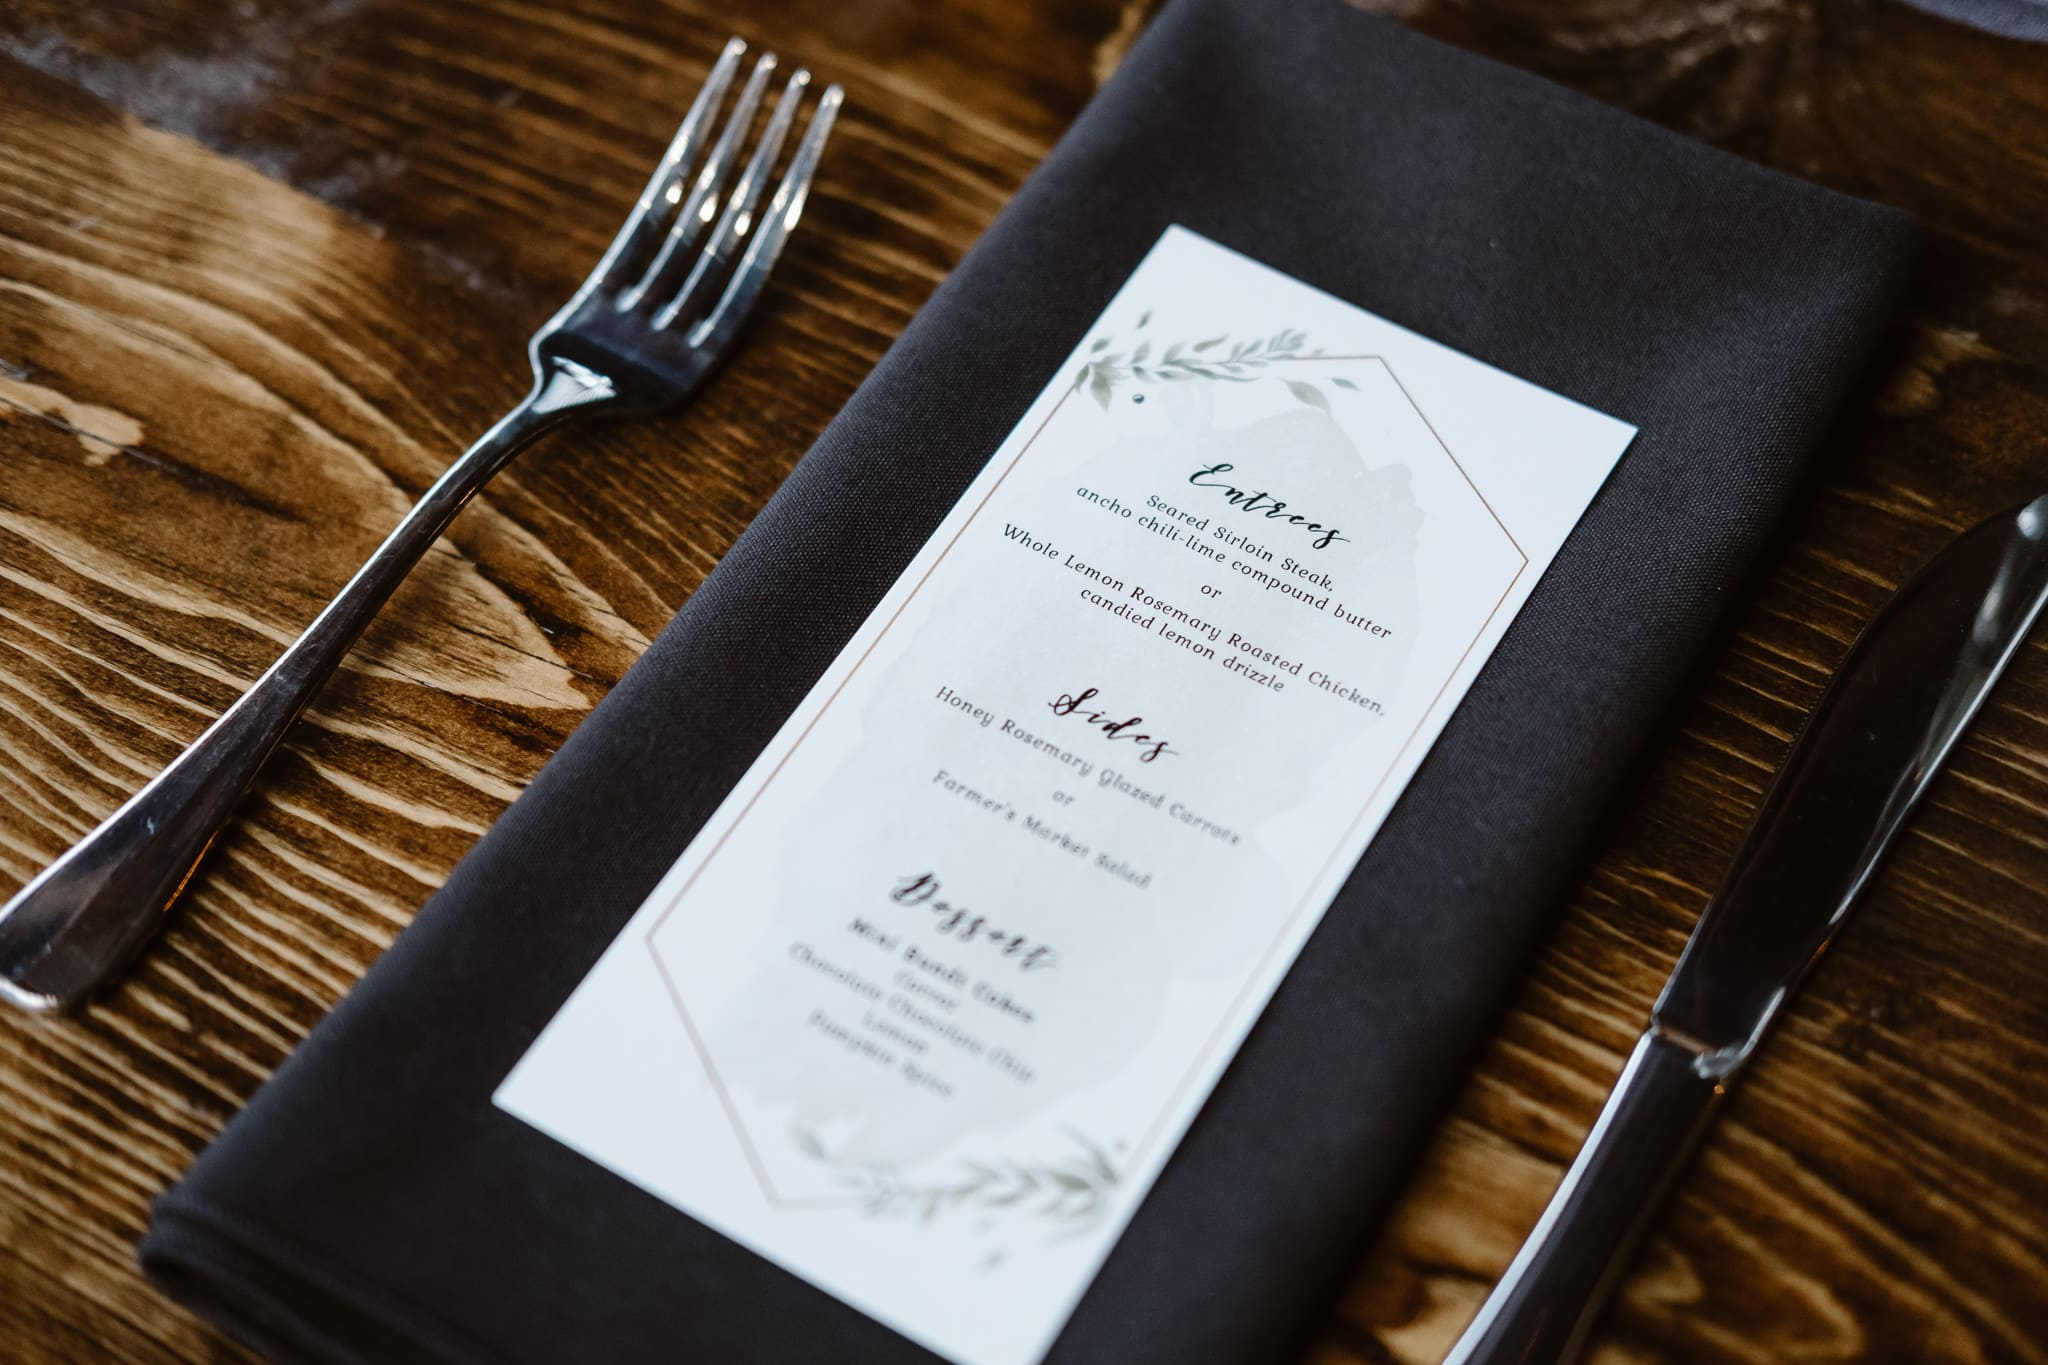 St Vrain Wedding Photographer | Longmont Wedding Photographer | Colorado Winter Wedding Photographer, Colorado industrial chic wedding ceremony, reception decor with navy and dark wood, menu cards, place setting